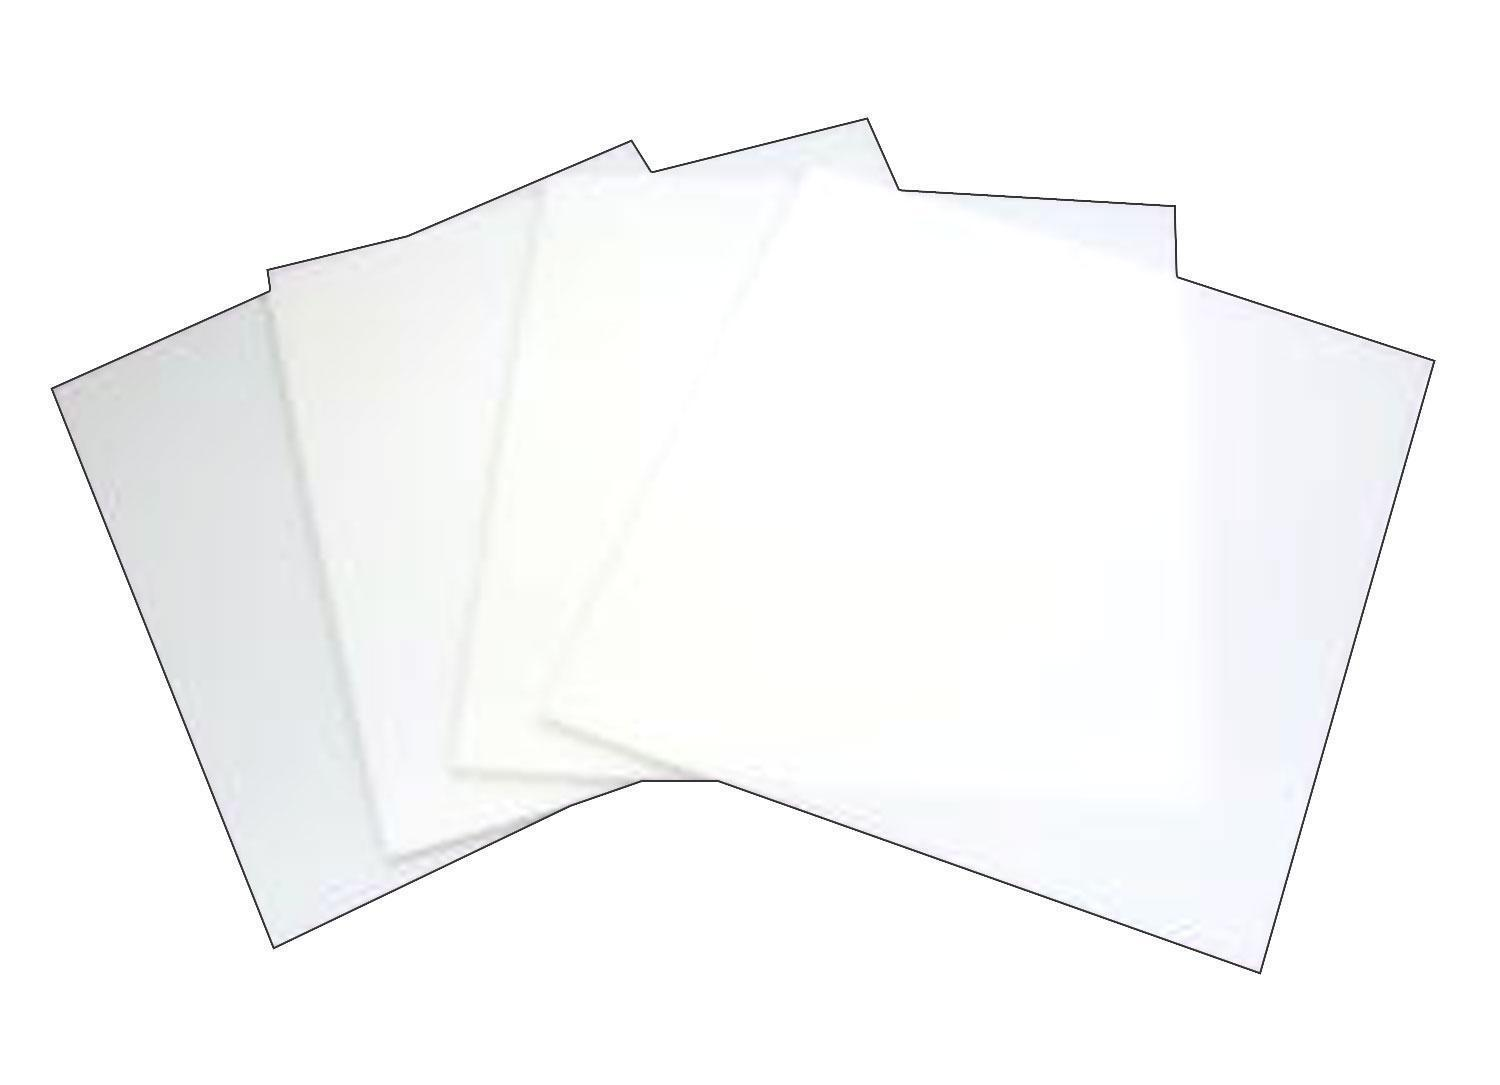 8 White Glass Squares 4 Pack - 96 COE